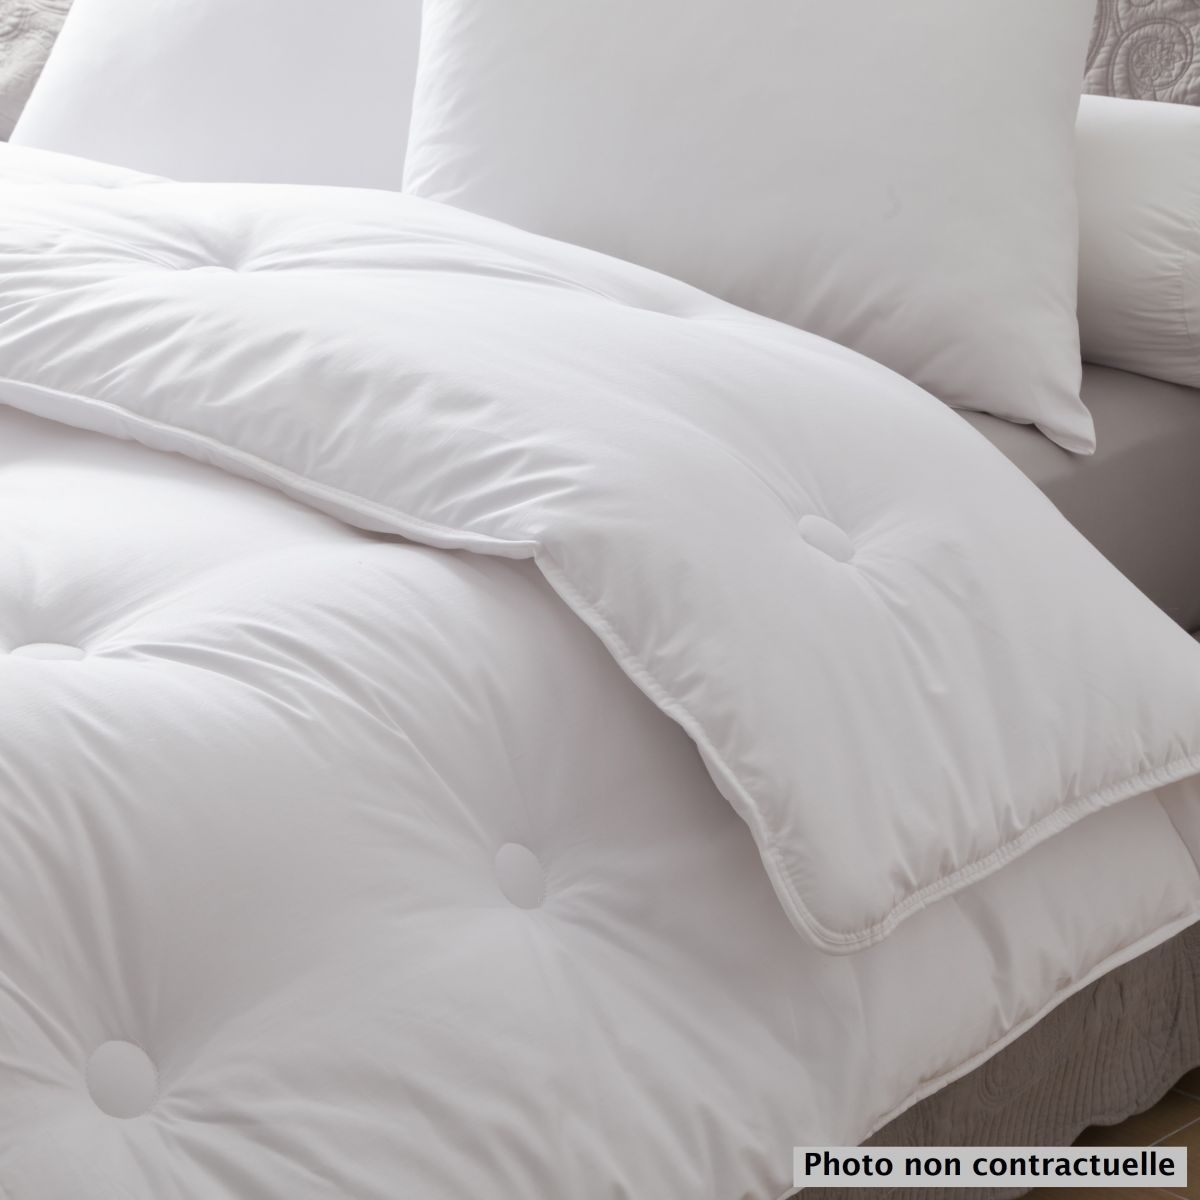 Quallo All Light Duvet | Linge de lit | Tradition des Vosges